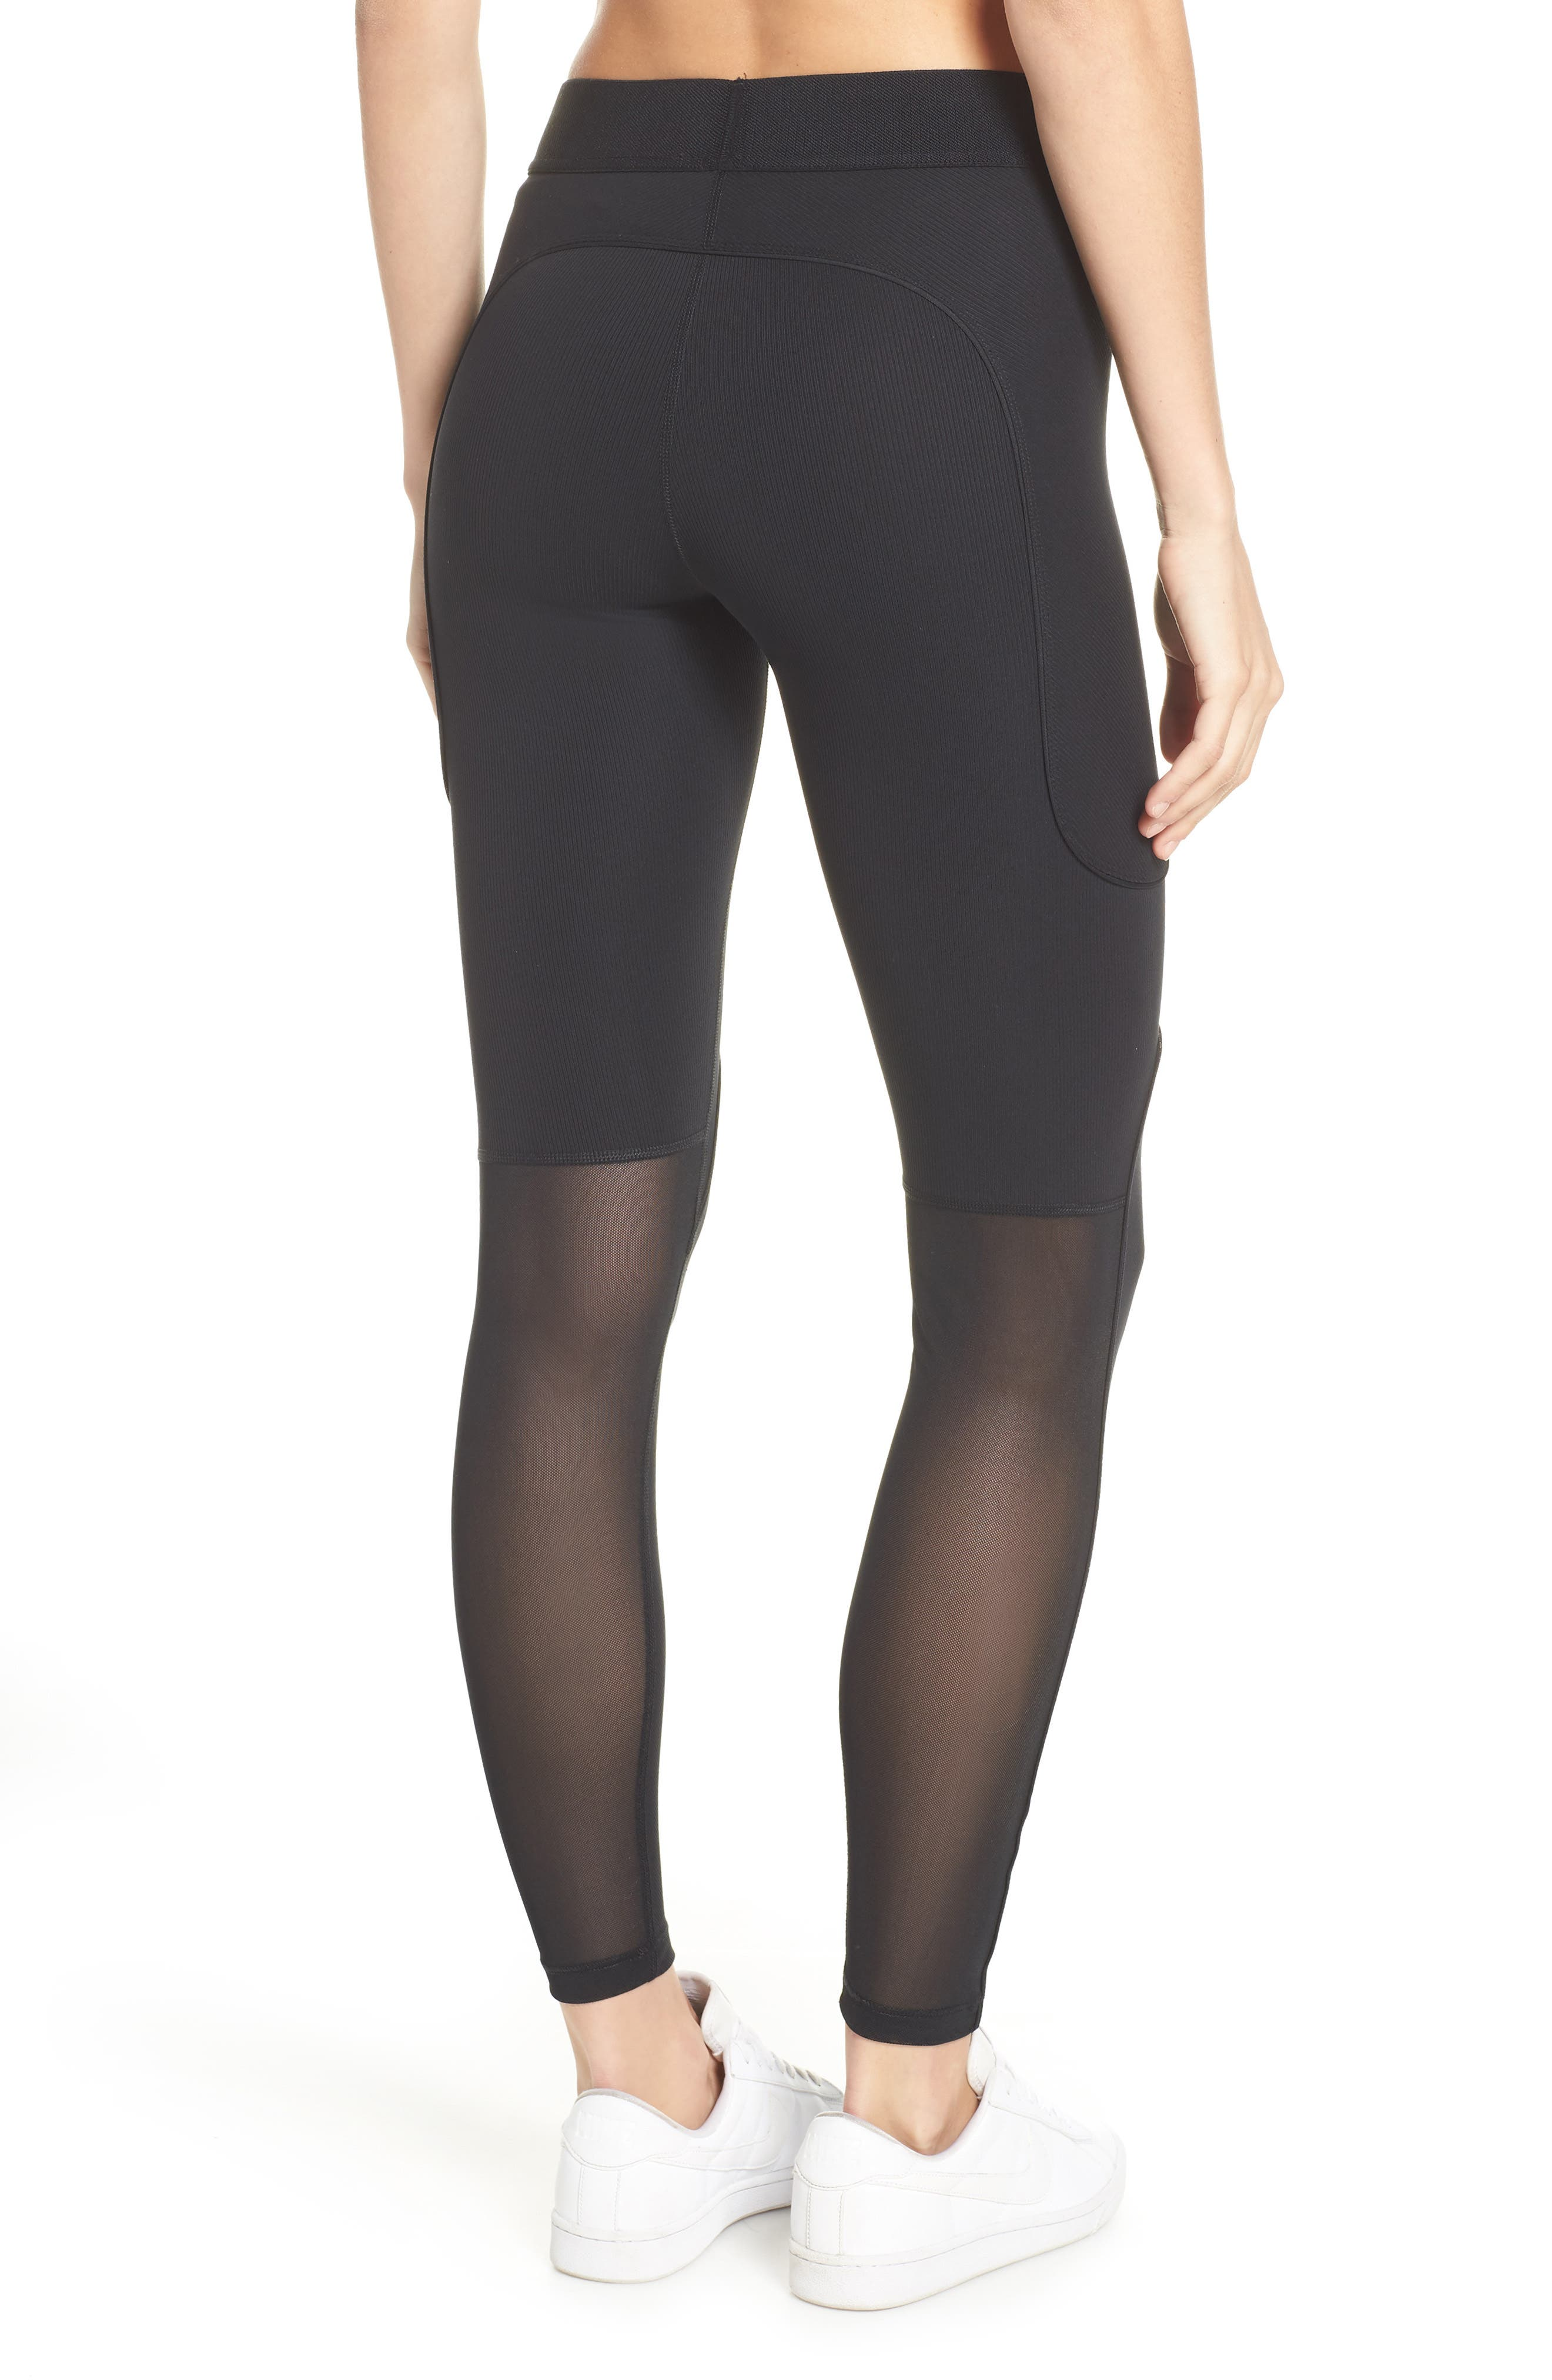 The Nike Pro HyperCool Women's Ribbed Tights,                             Alternate thumbnail 2, color,                             BLACK/ CLEAR